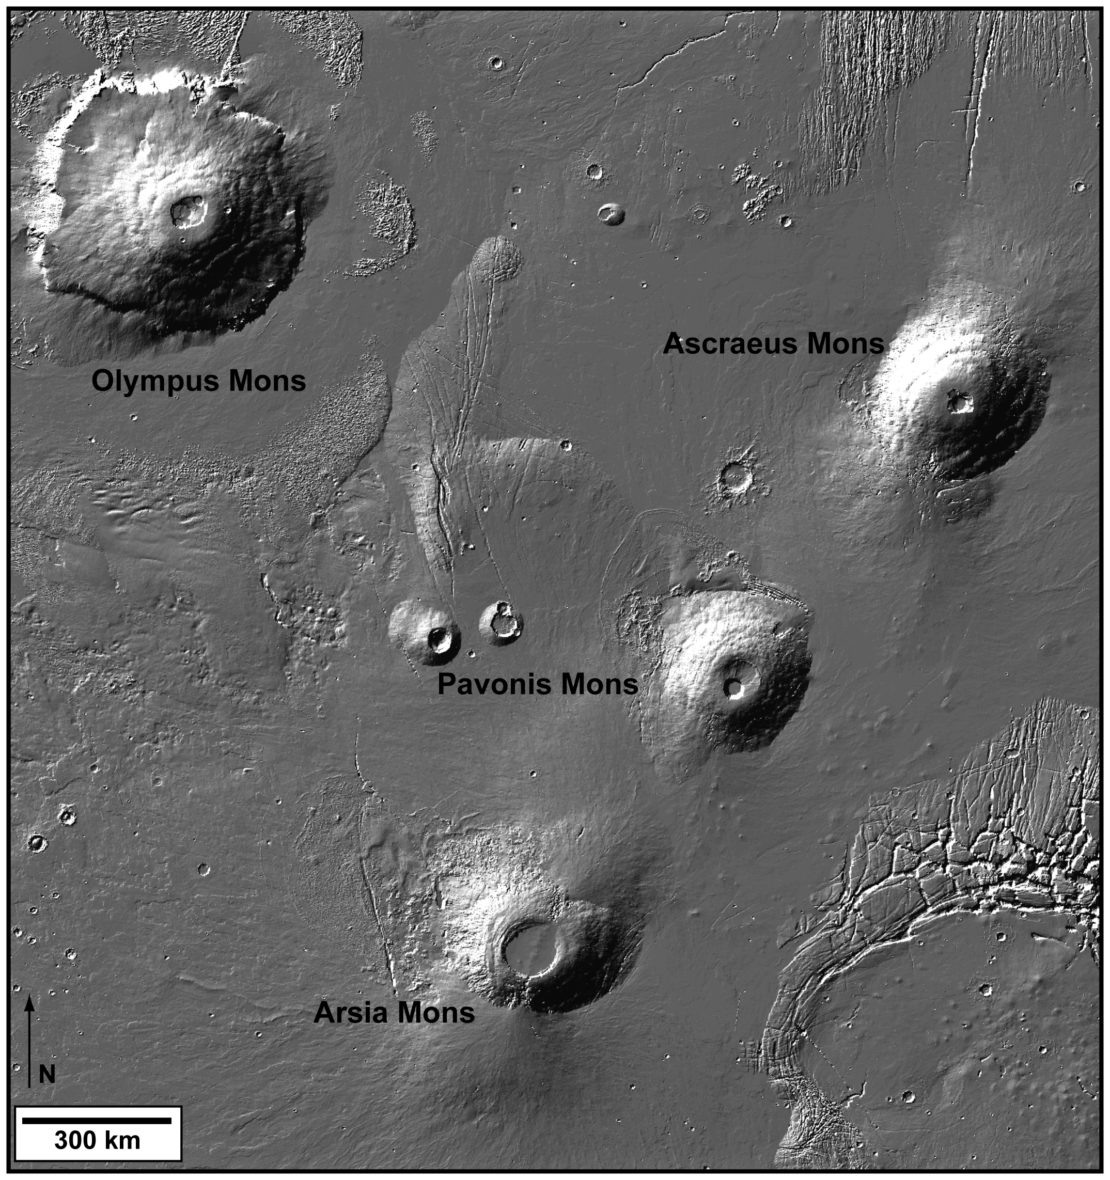 Tharsis region of Mars